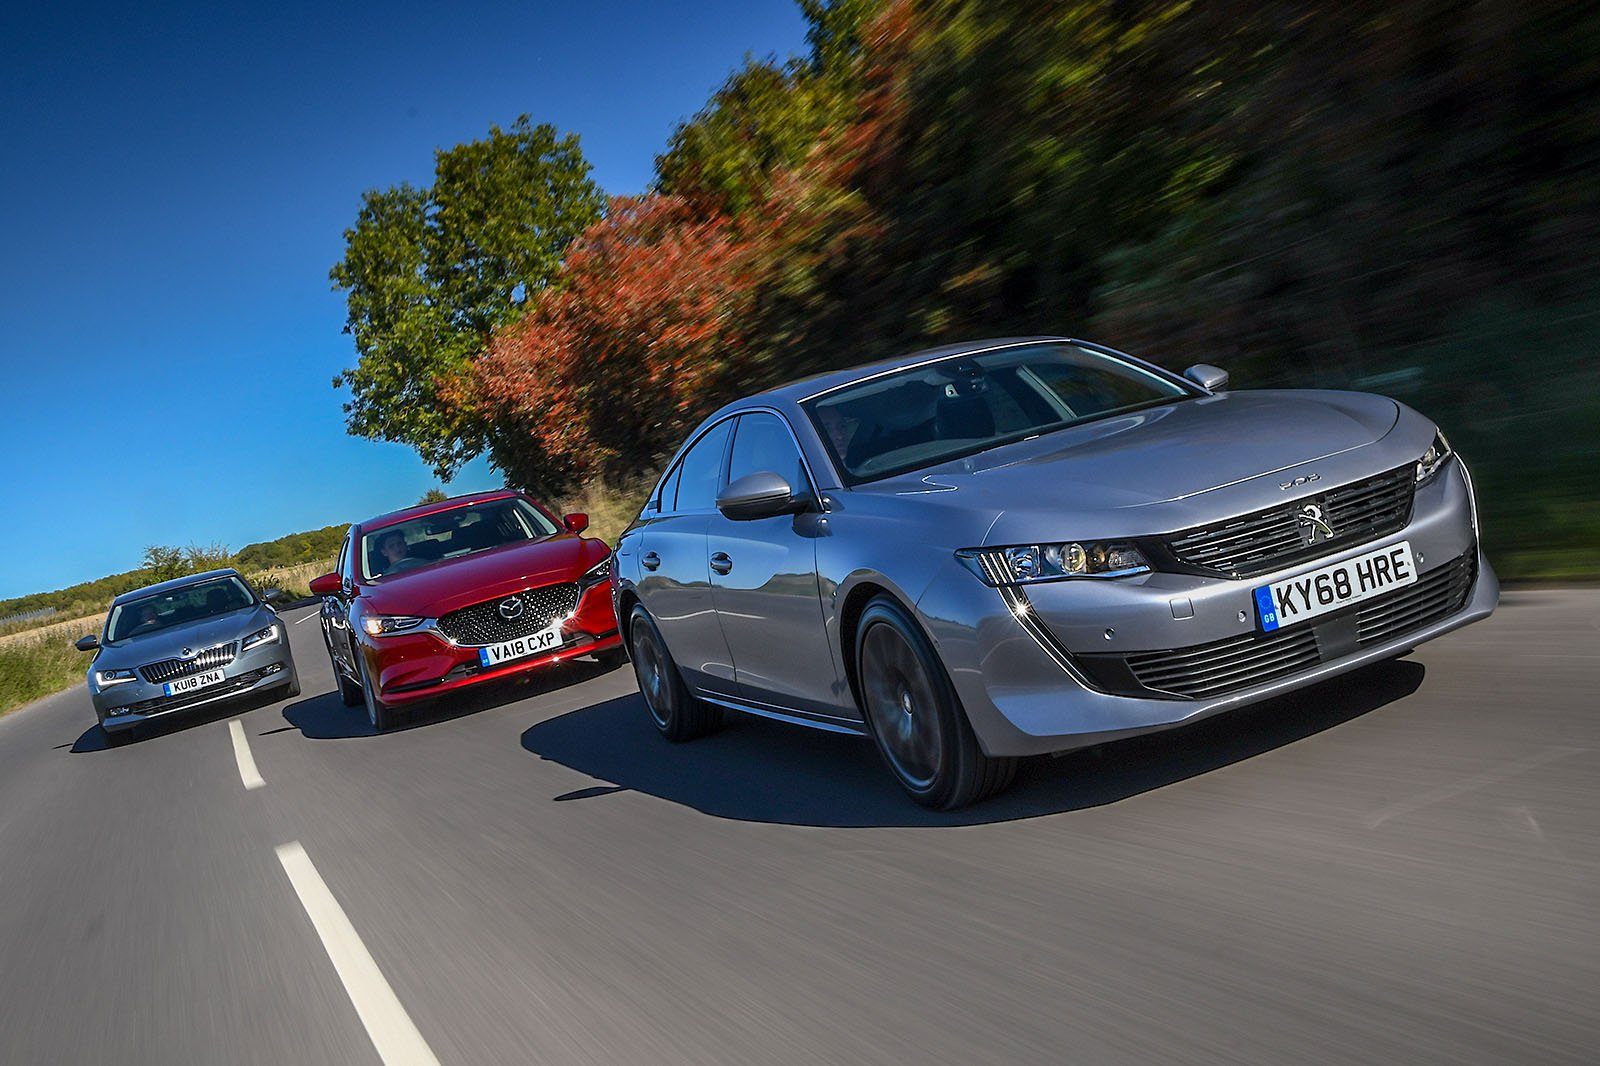 New Mazda 6 & Peugeot 508 vs Skoda Superb